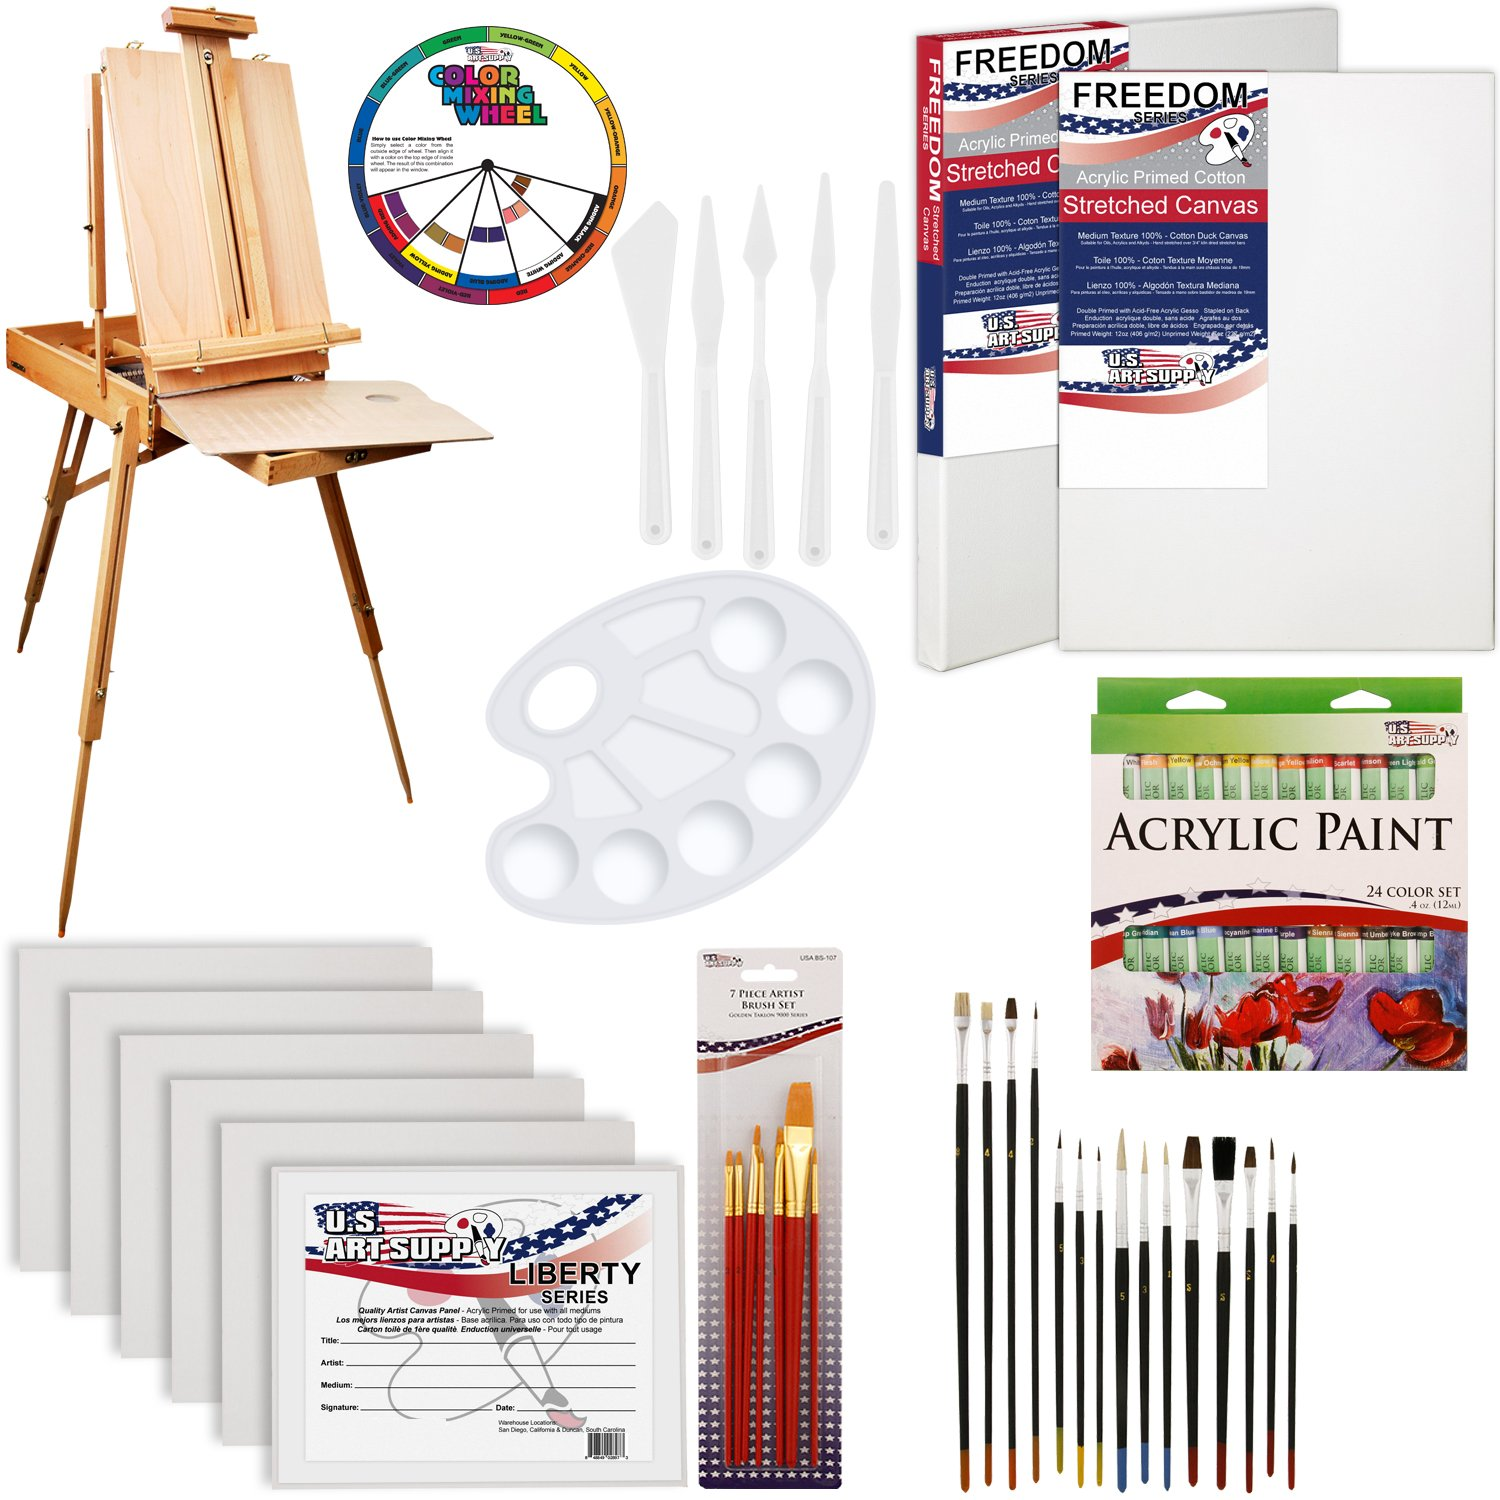 U.S. Art Supply 62 Piece Acrylic Painting Kit with Coronado French Easel, Acrylic Paint, 16''x20'' Stretched Canvases, 11''x14'' Canvas Panels, Nylon Paint Brushes, Multipurpose Paint Brushes and more by US Art Supply